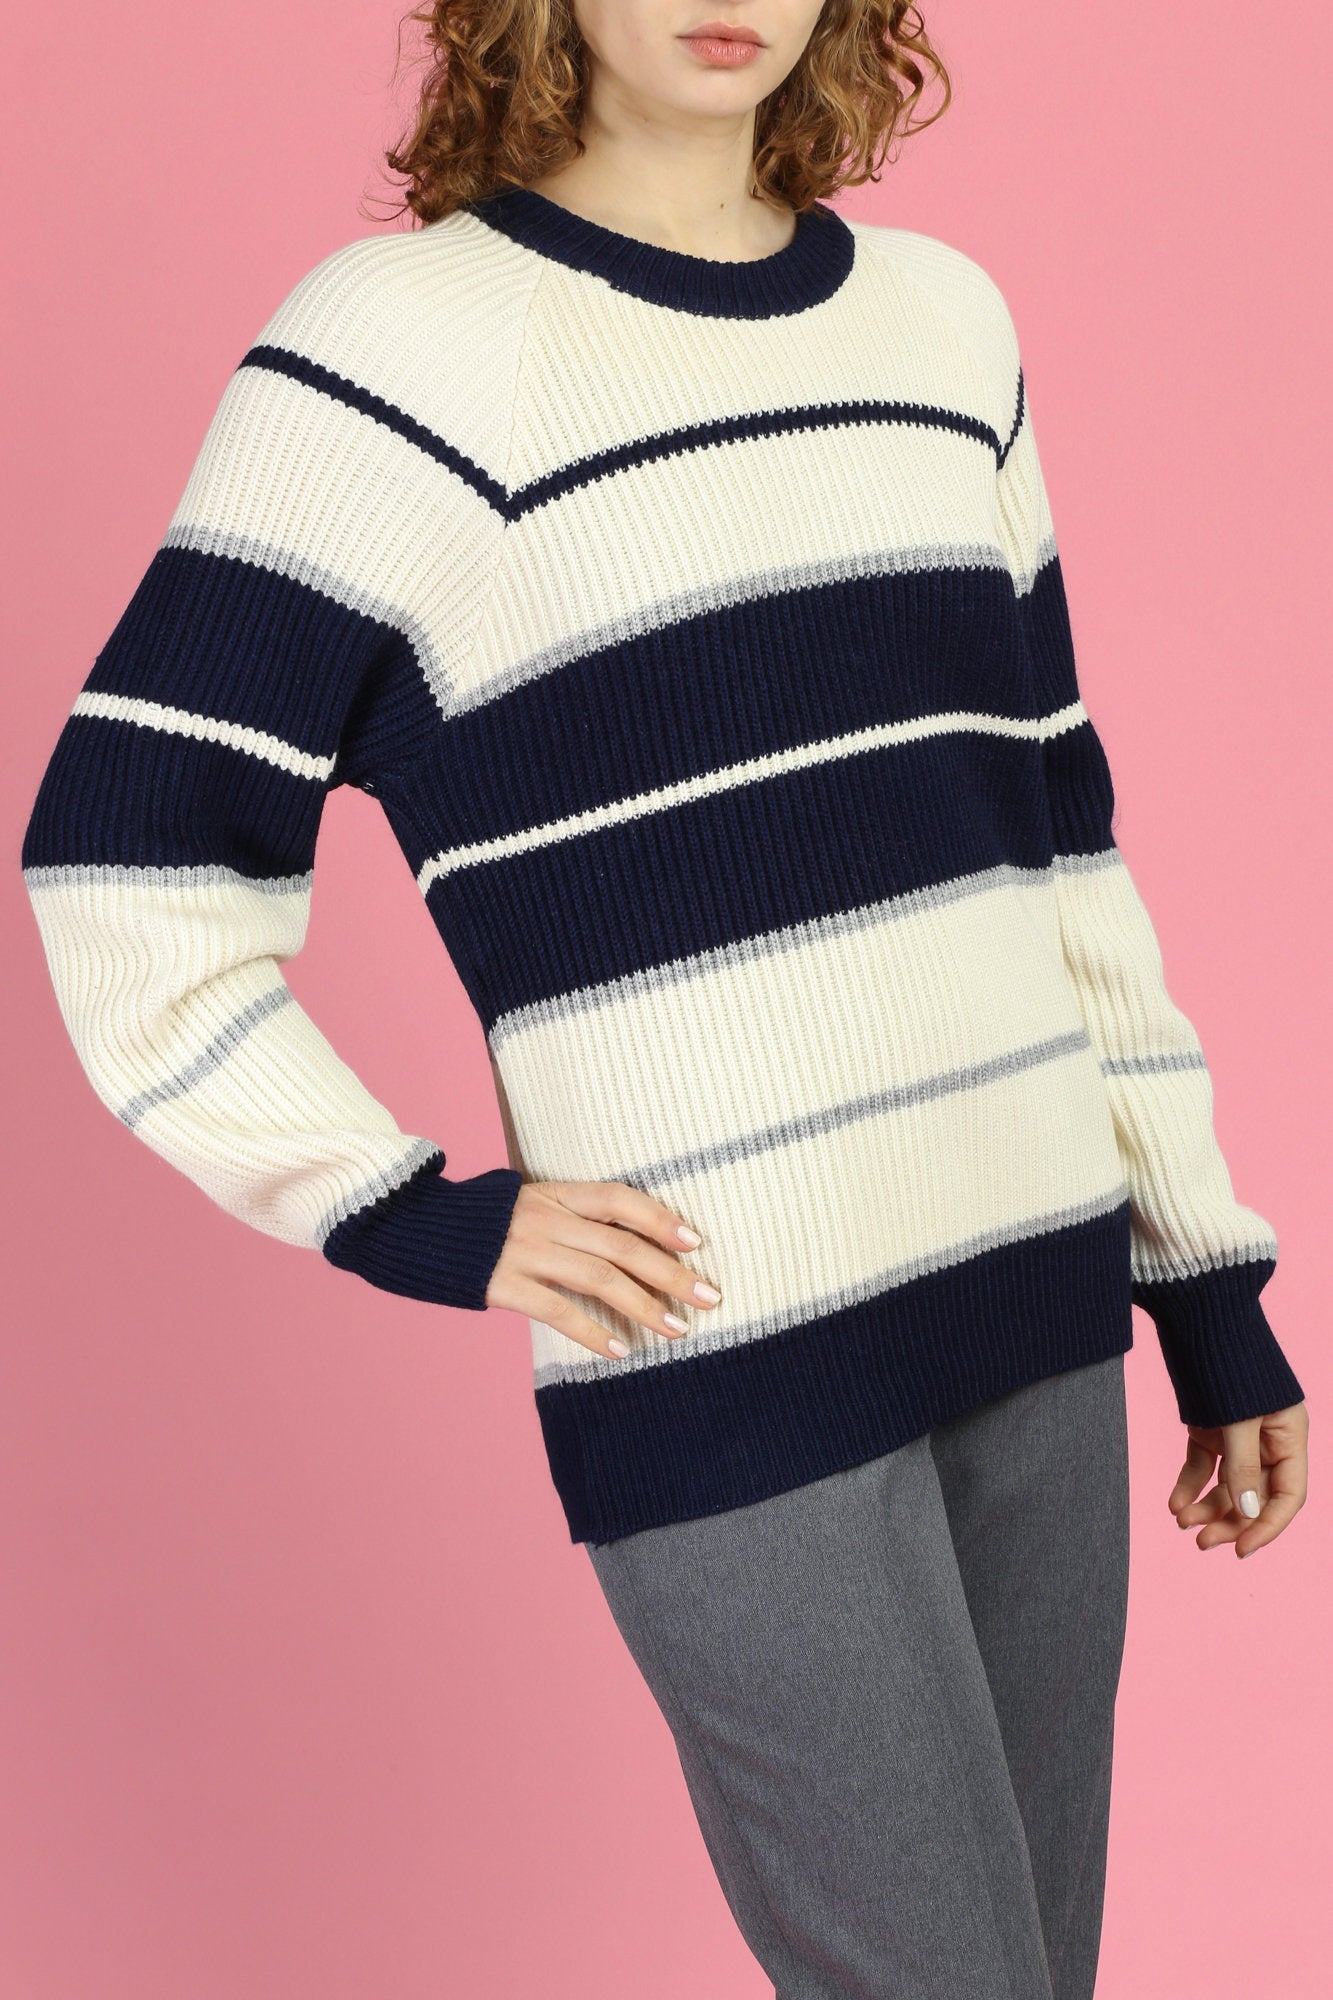 80s Navy Blue & Cream Striped Sweater - Large